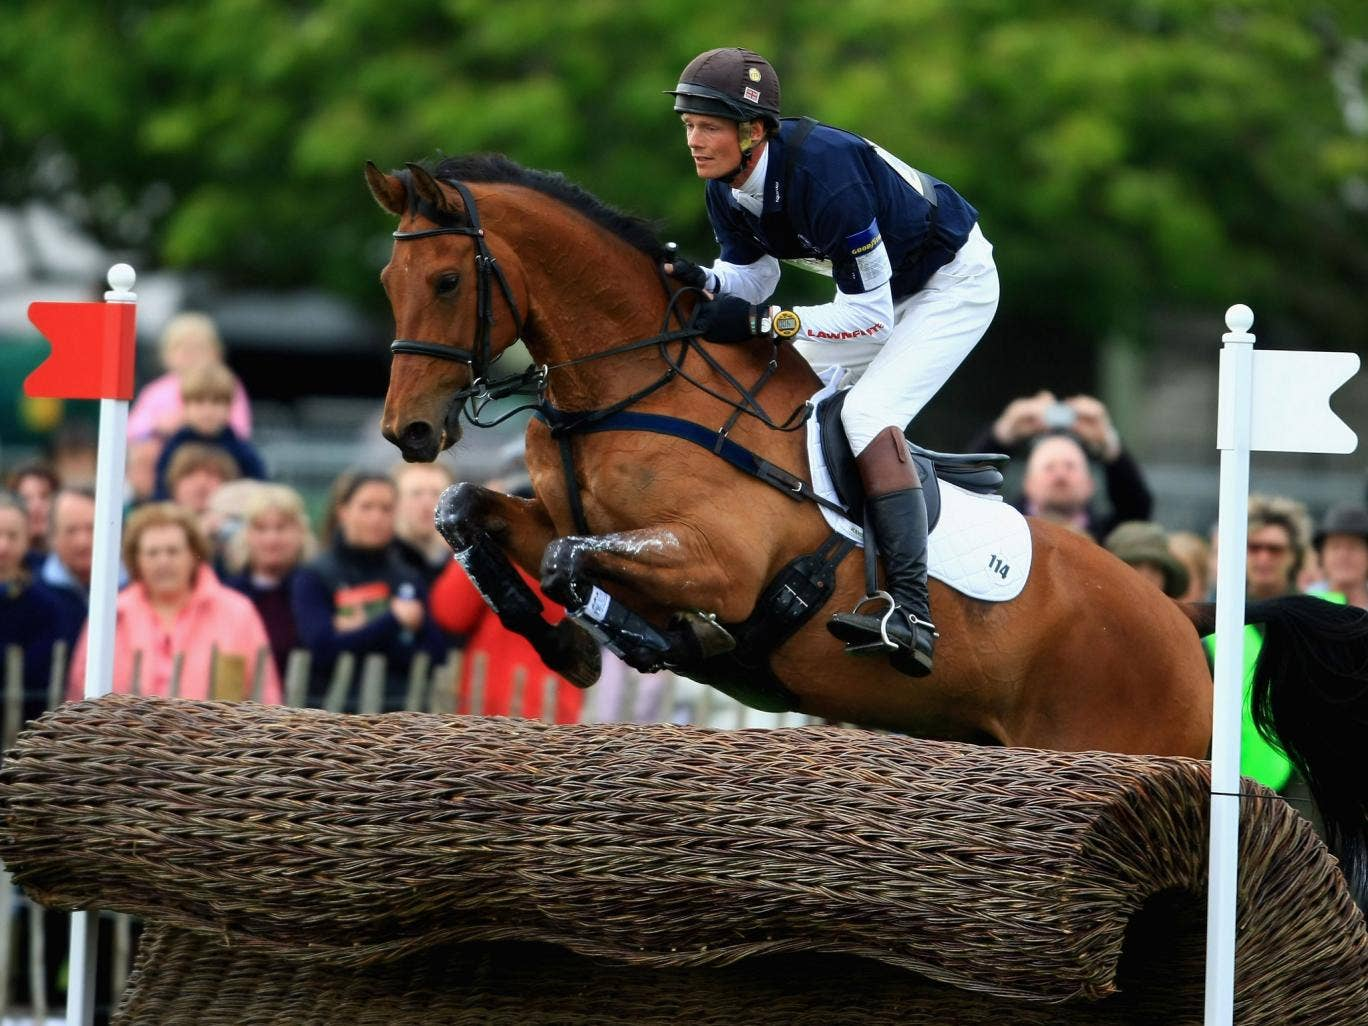 William Fox Pitt rides Tamarillo for Great Britain at the Badminton Horse Trials in May 2008